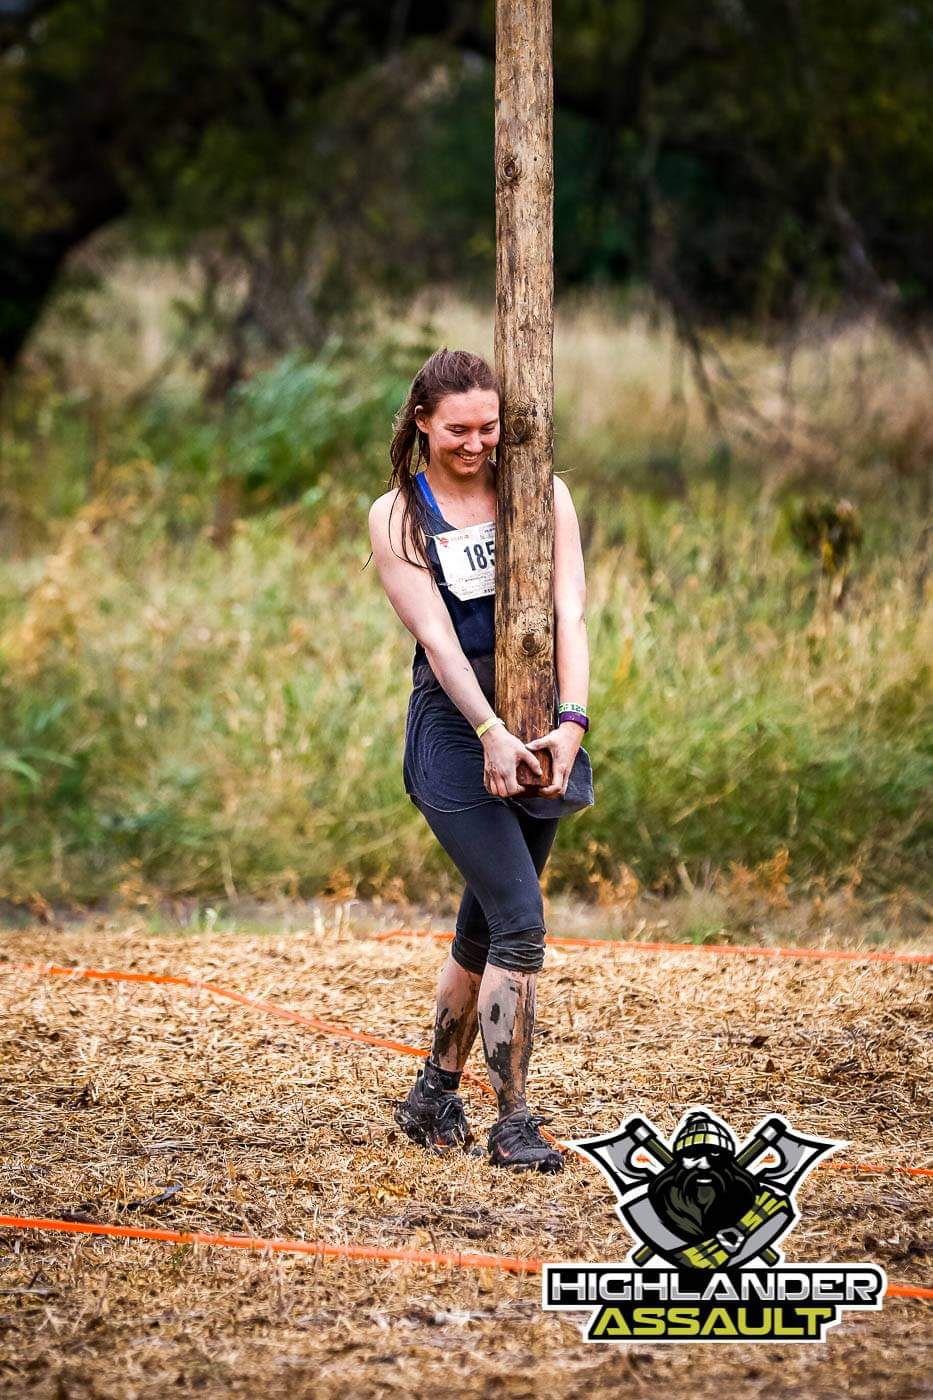 The Caber Carry- See what I mean about the pictures looking epic?